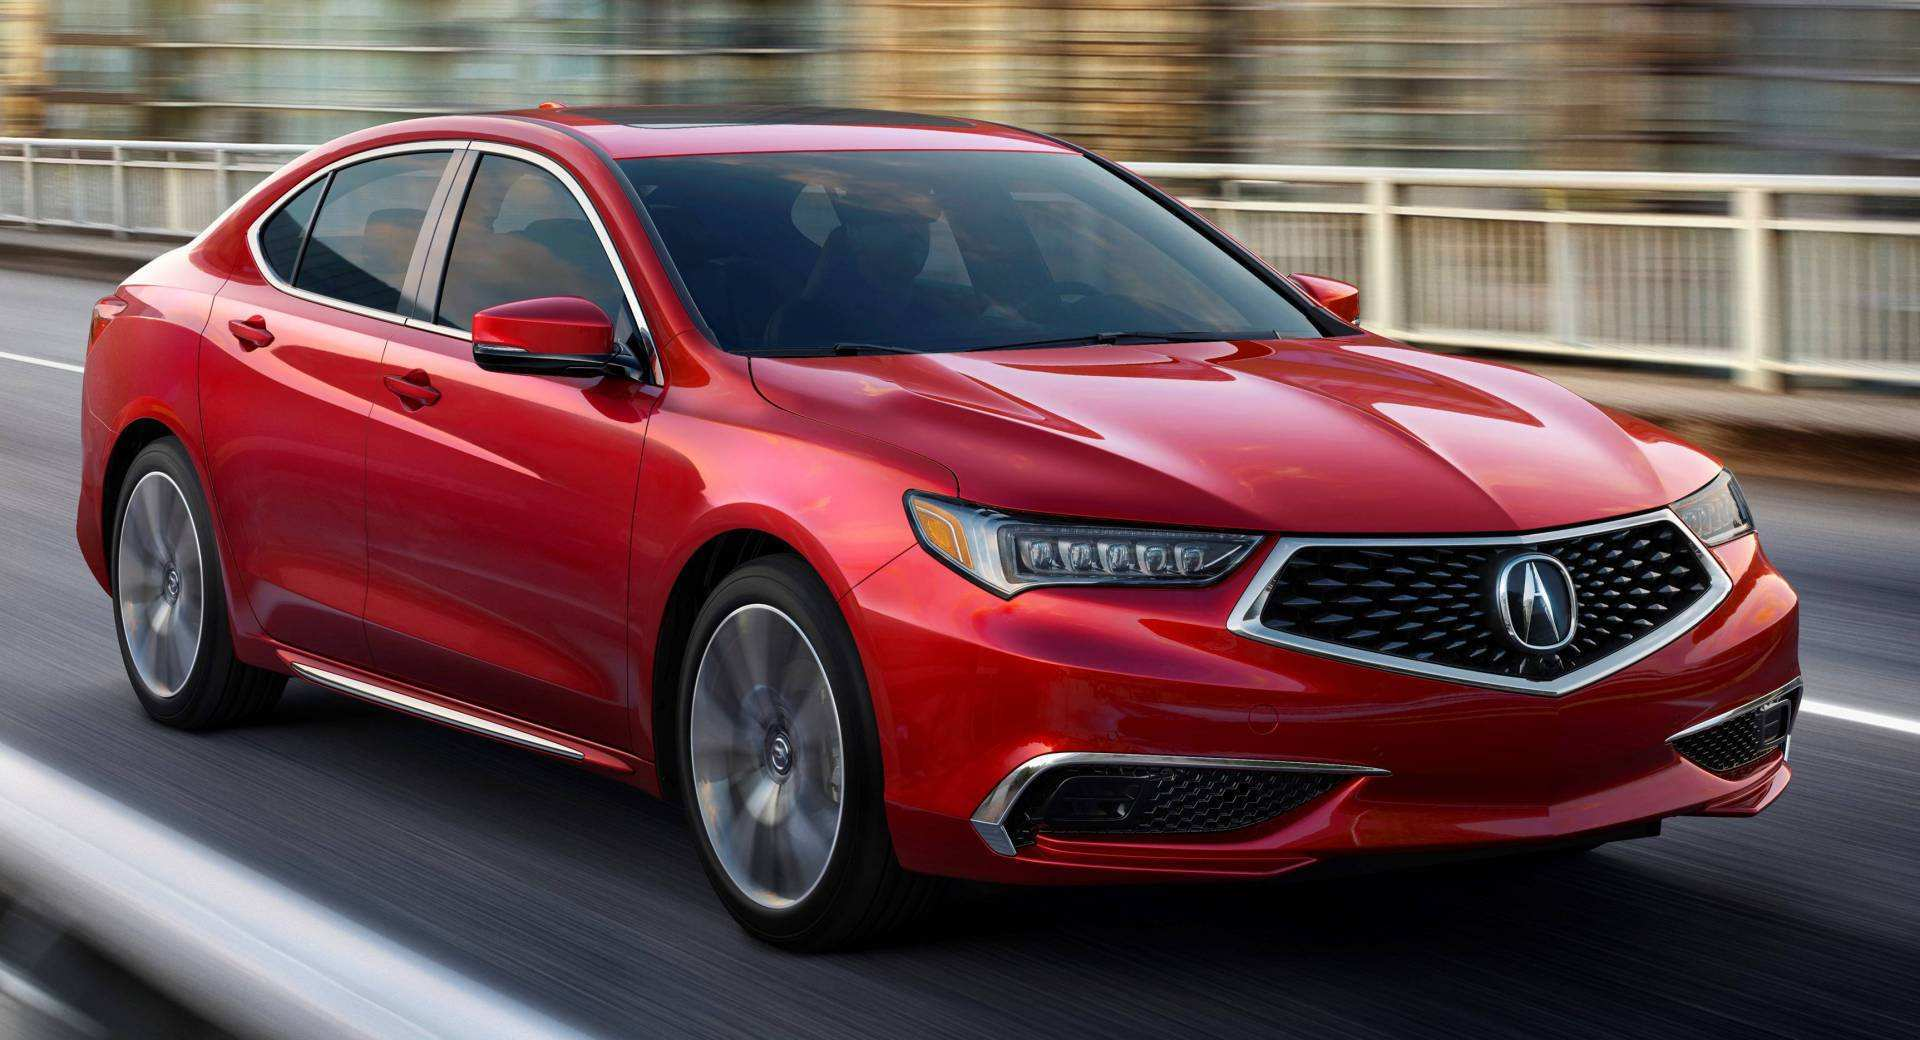 94 Gallery of When Does The 2020 Acura Tlx Come Out Photos for When Does The 2020 Acura Tlx Come Out